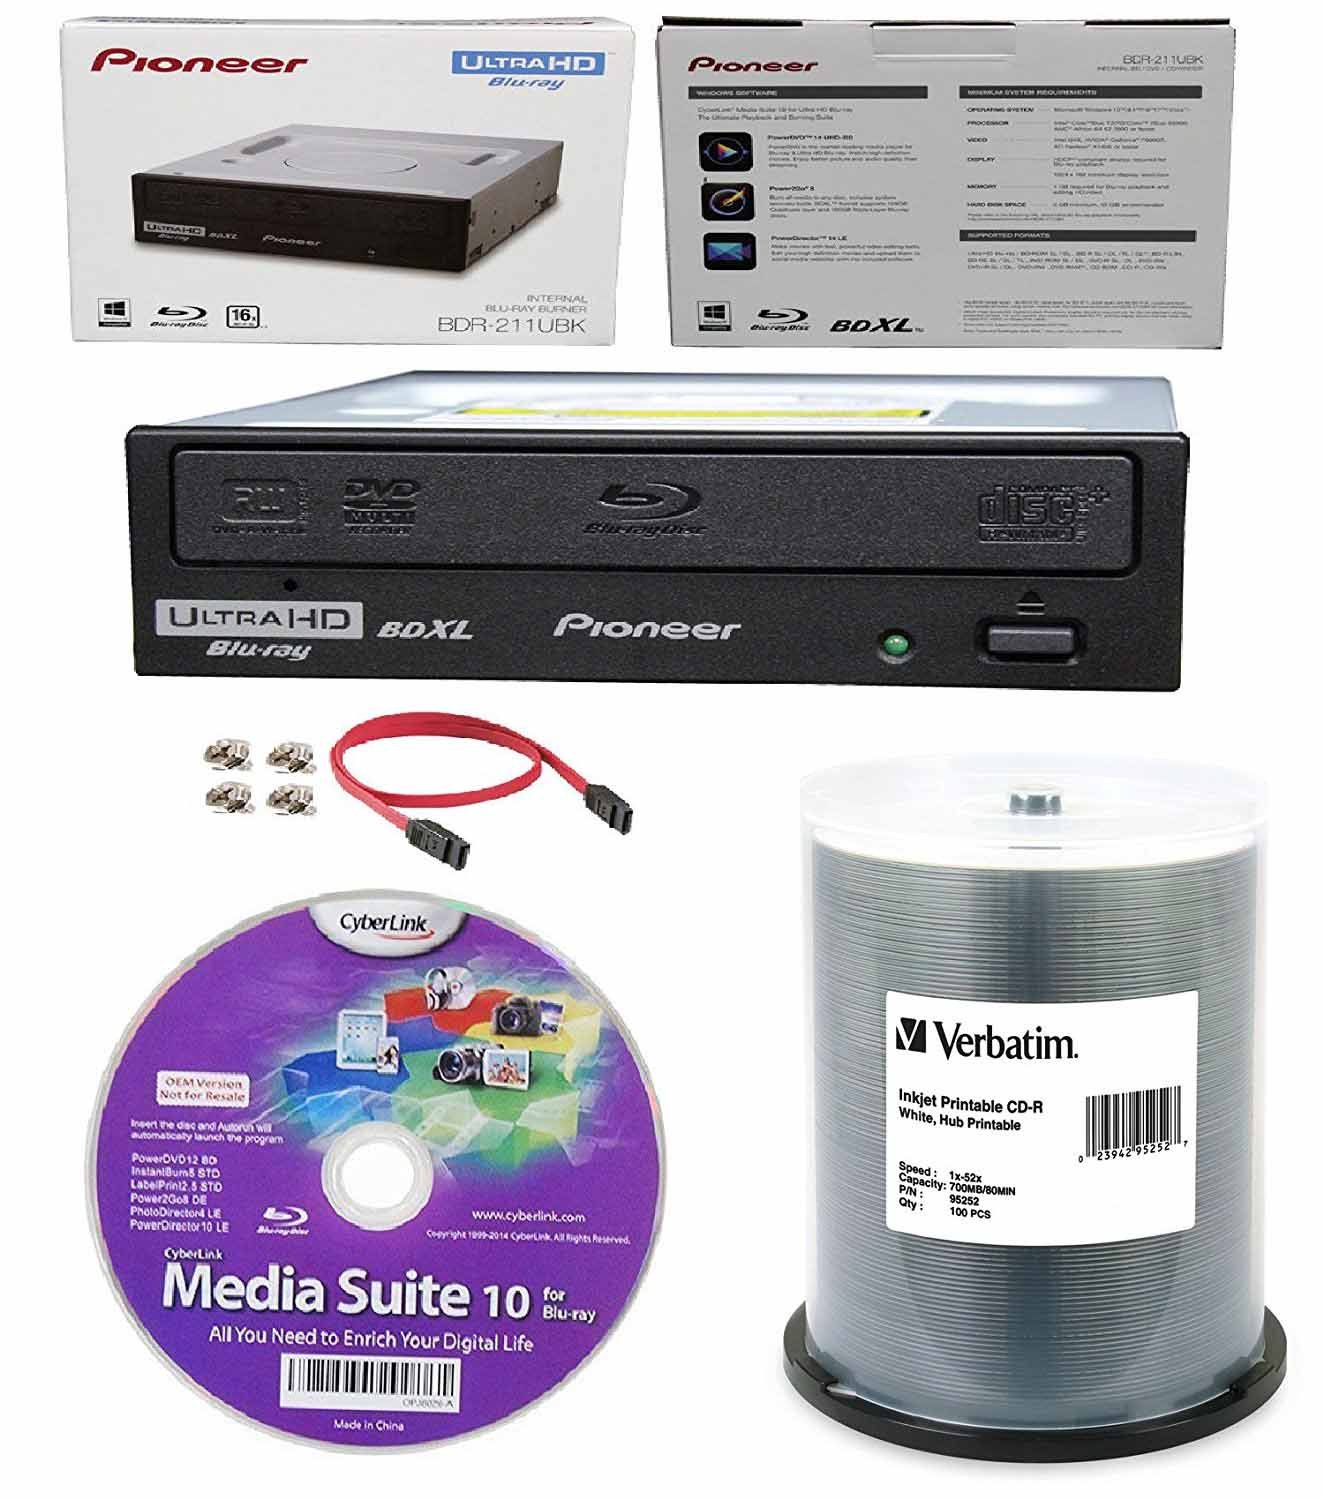 Pioneer 16x BDR-211UBK Internal Ultra HD Blu-ray BDXL Burner, Cyberlink Software and Cable Accessories Bundle with 100pk CD-R Verbatim 700MB 52X DataLifePlus White Inkjet, Hub Printable